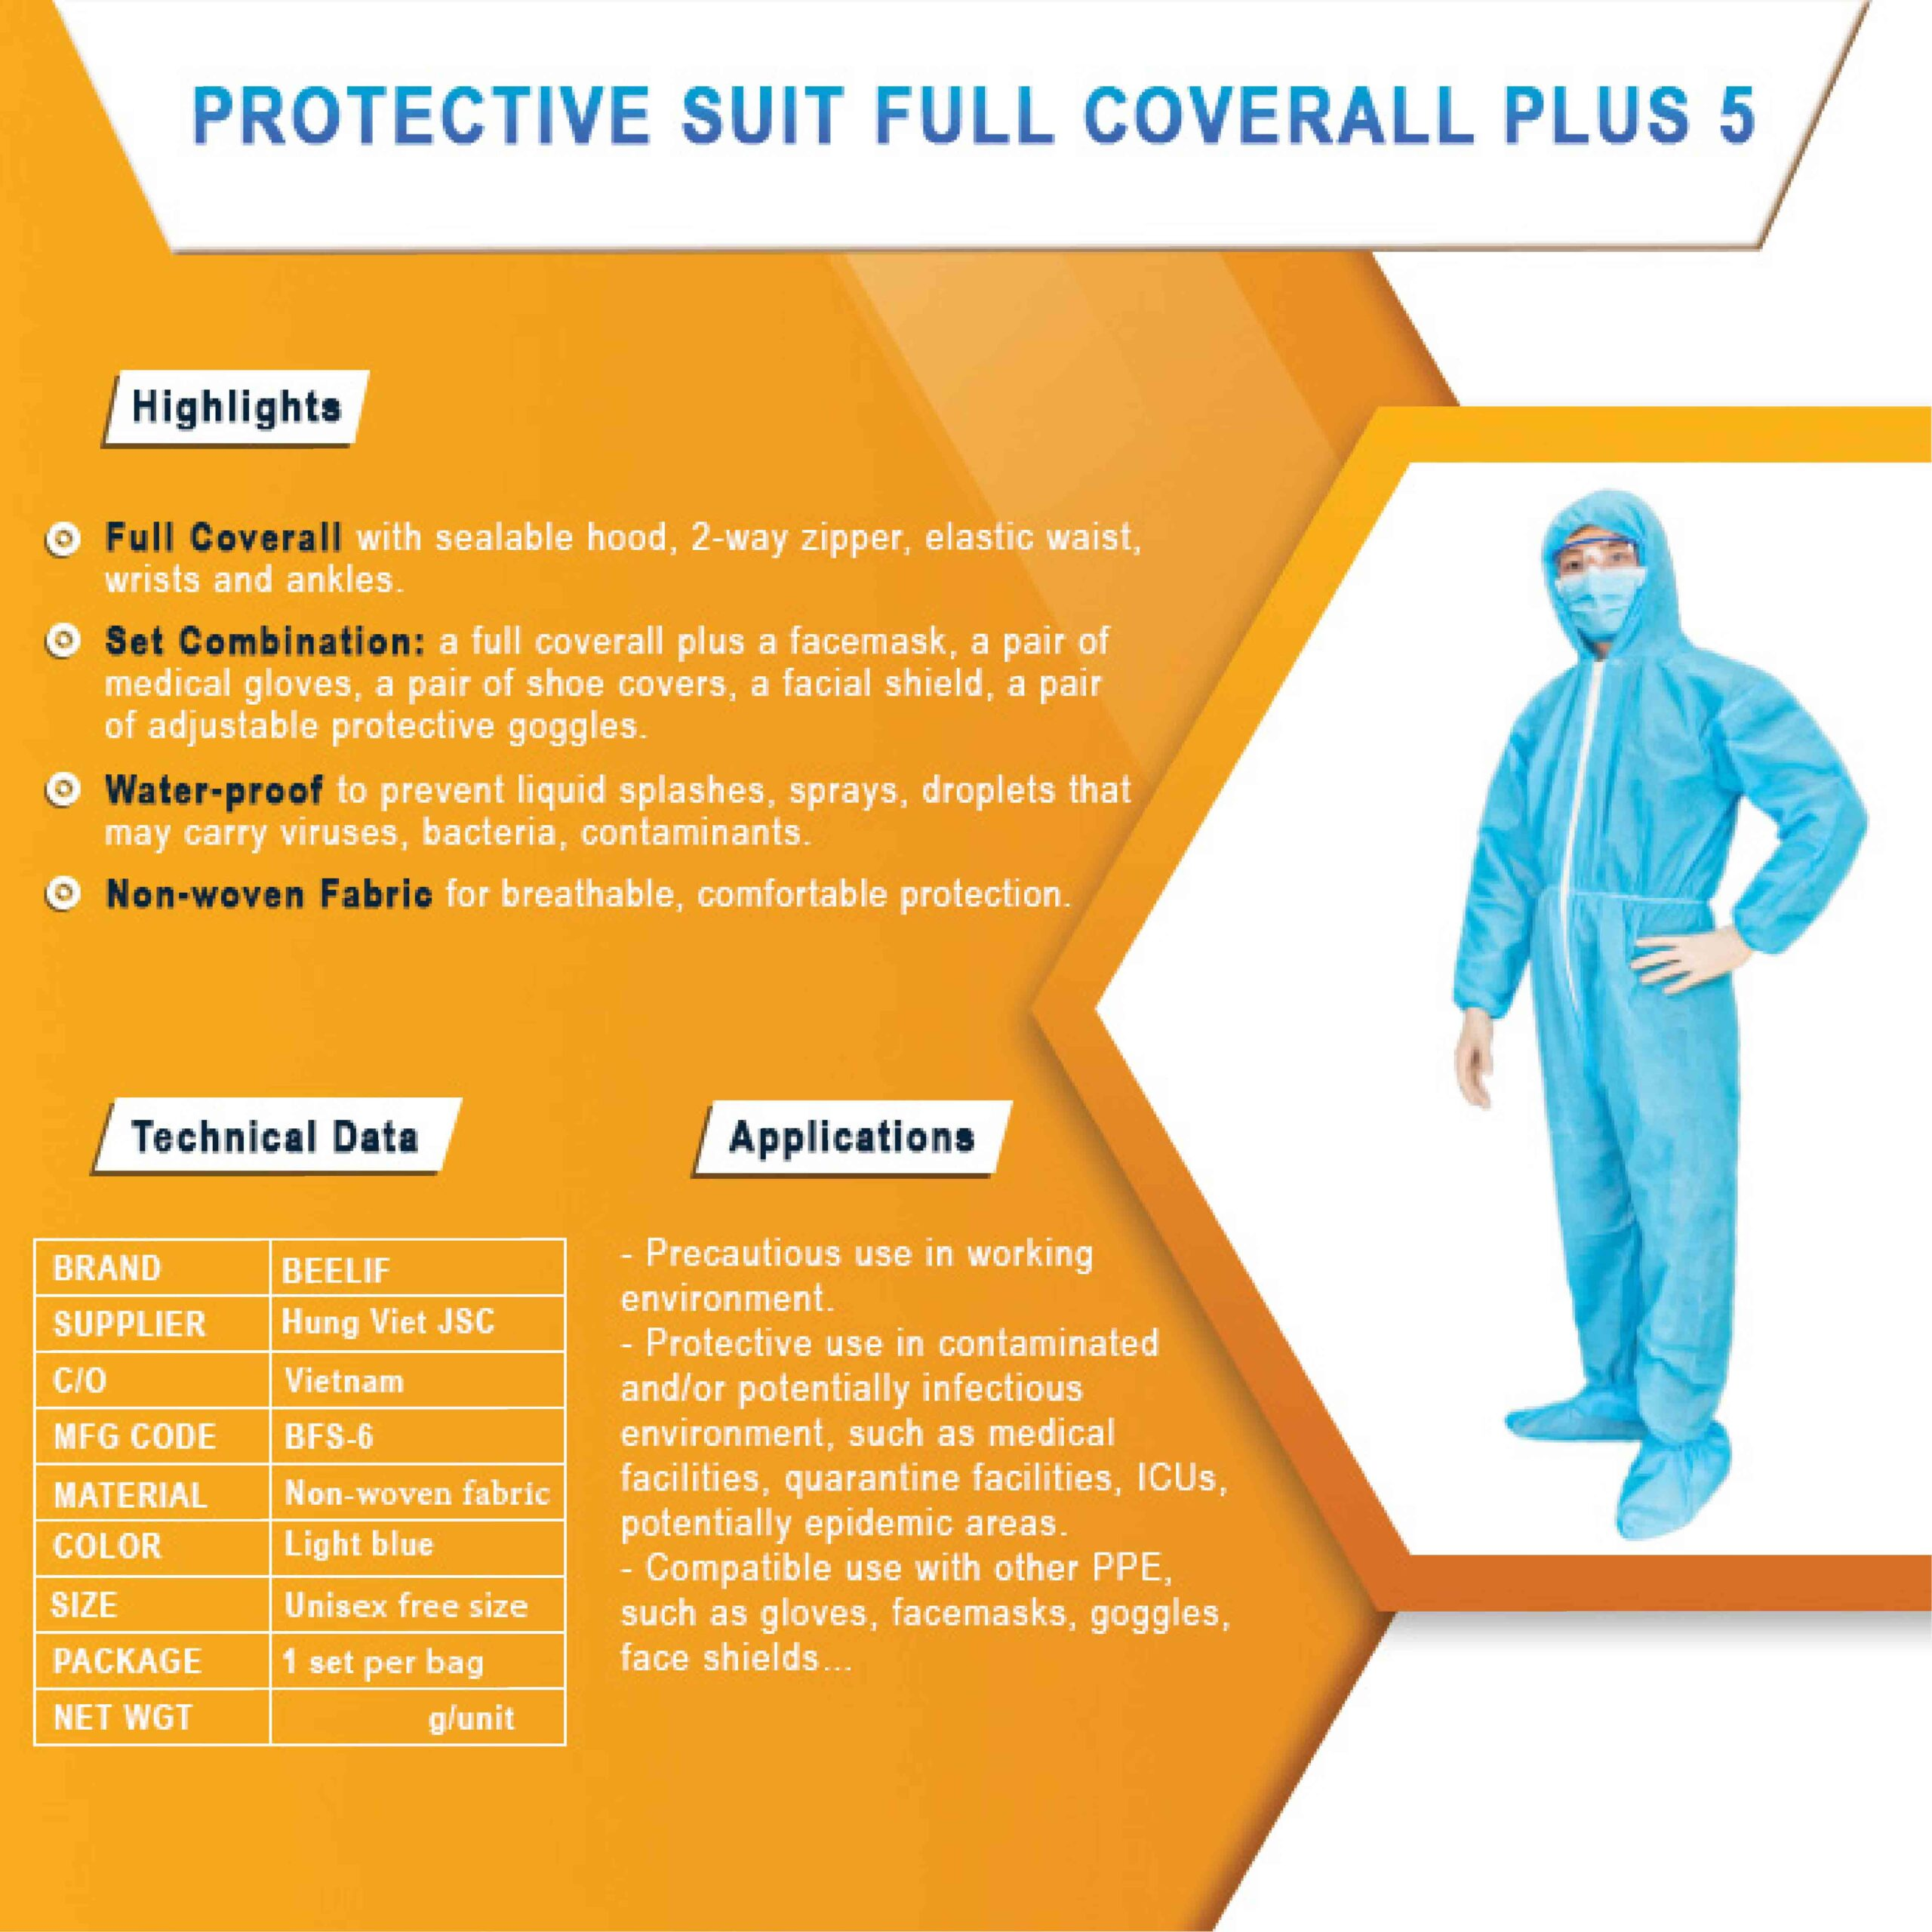 Protective suit full coverall & shoe covers